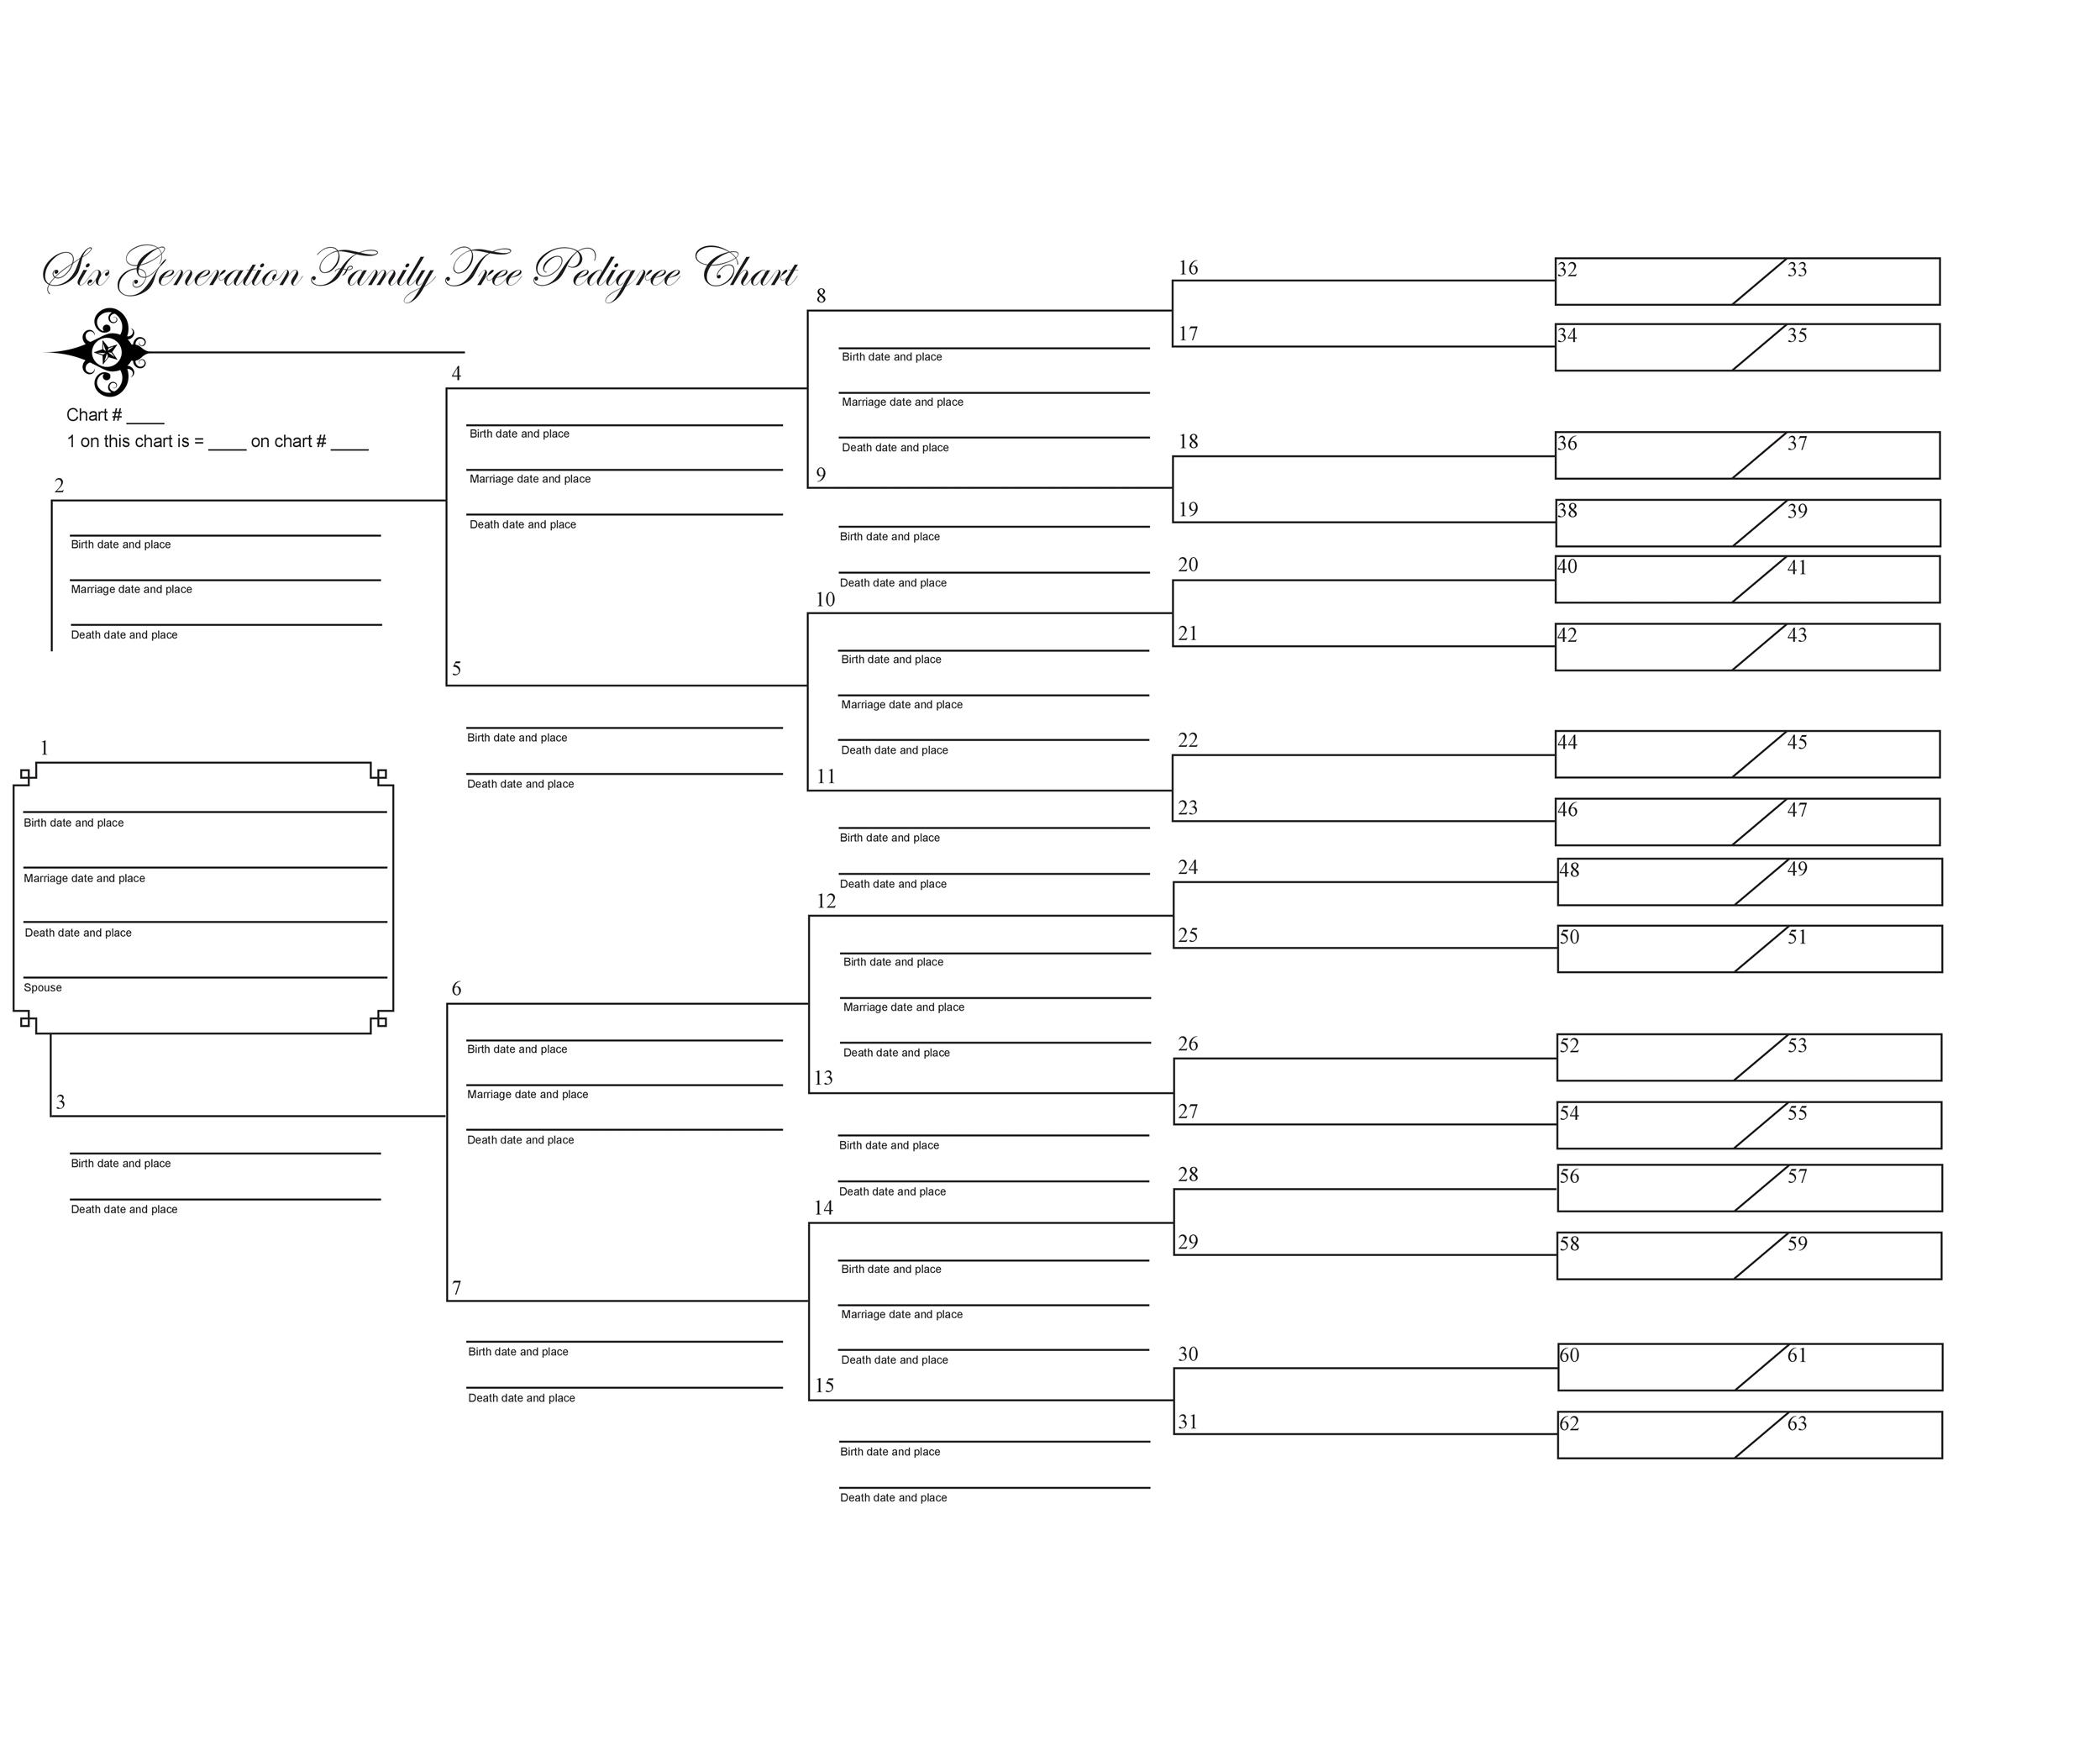 40 free family tree templates word excel pdf for Templates for family tree charts